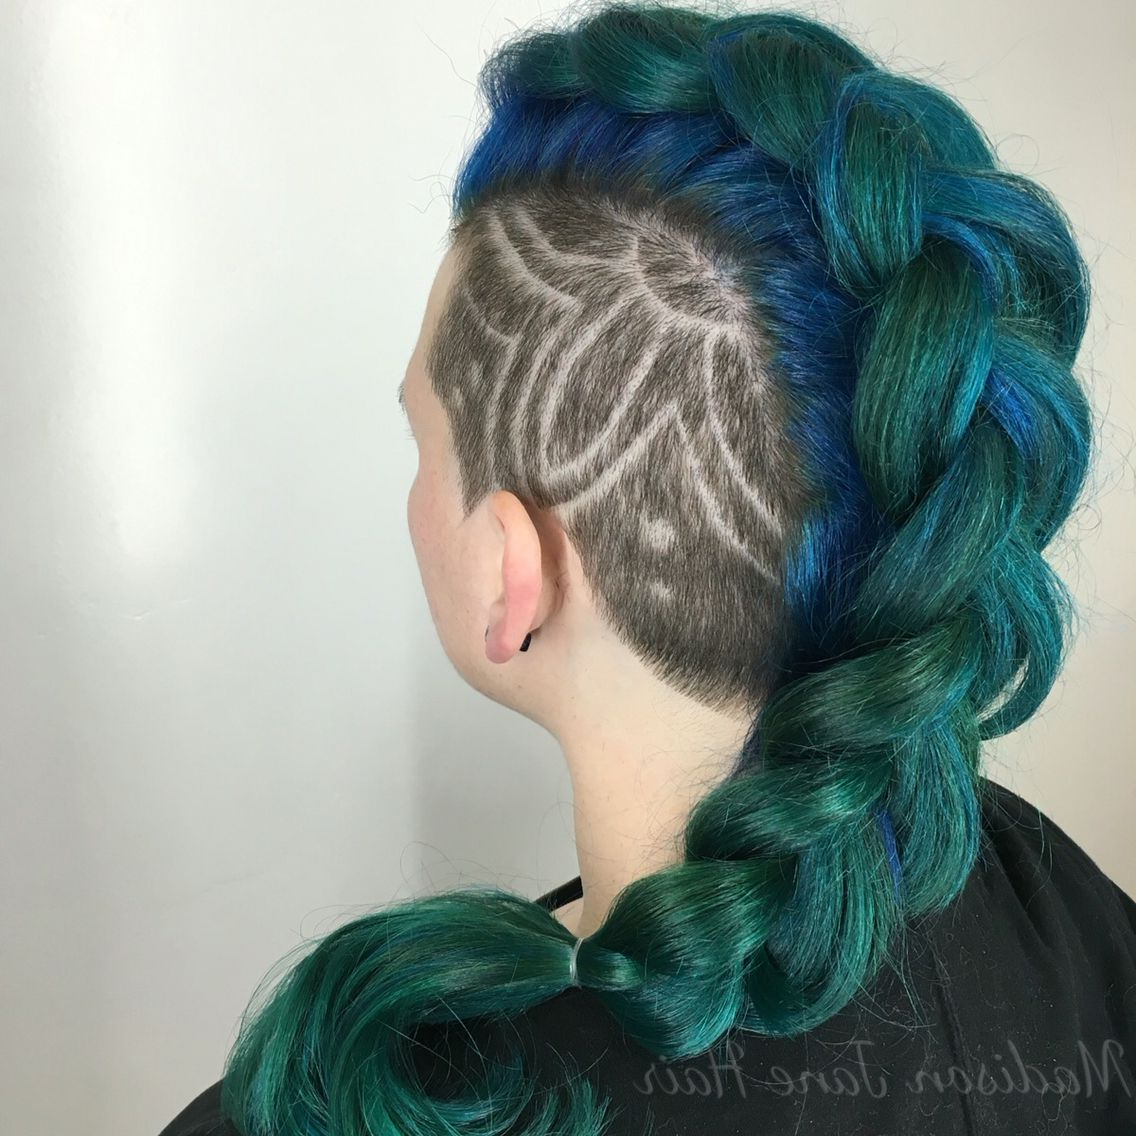 Preferred Soft Spiked Mohawk Hairstyles Throughout Mermaid Mohawk! Teal, Blue And Green Gradients (View 14 of 20)